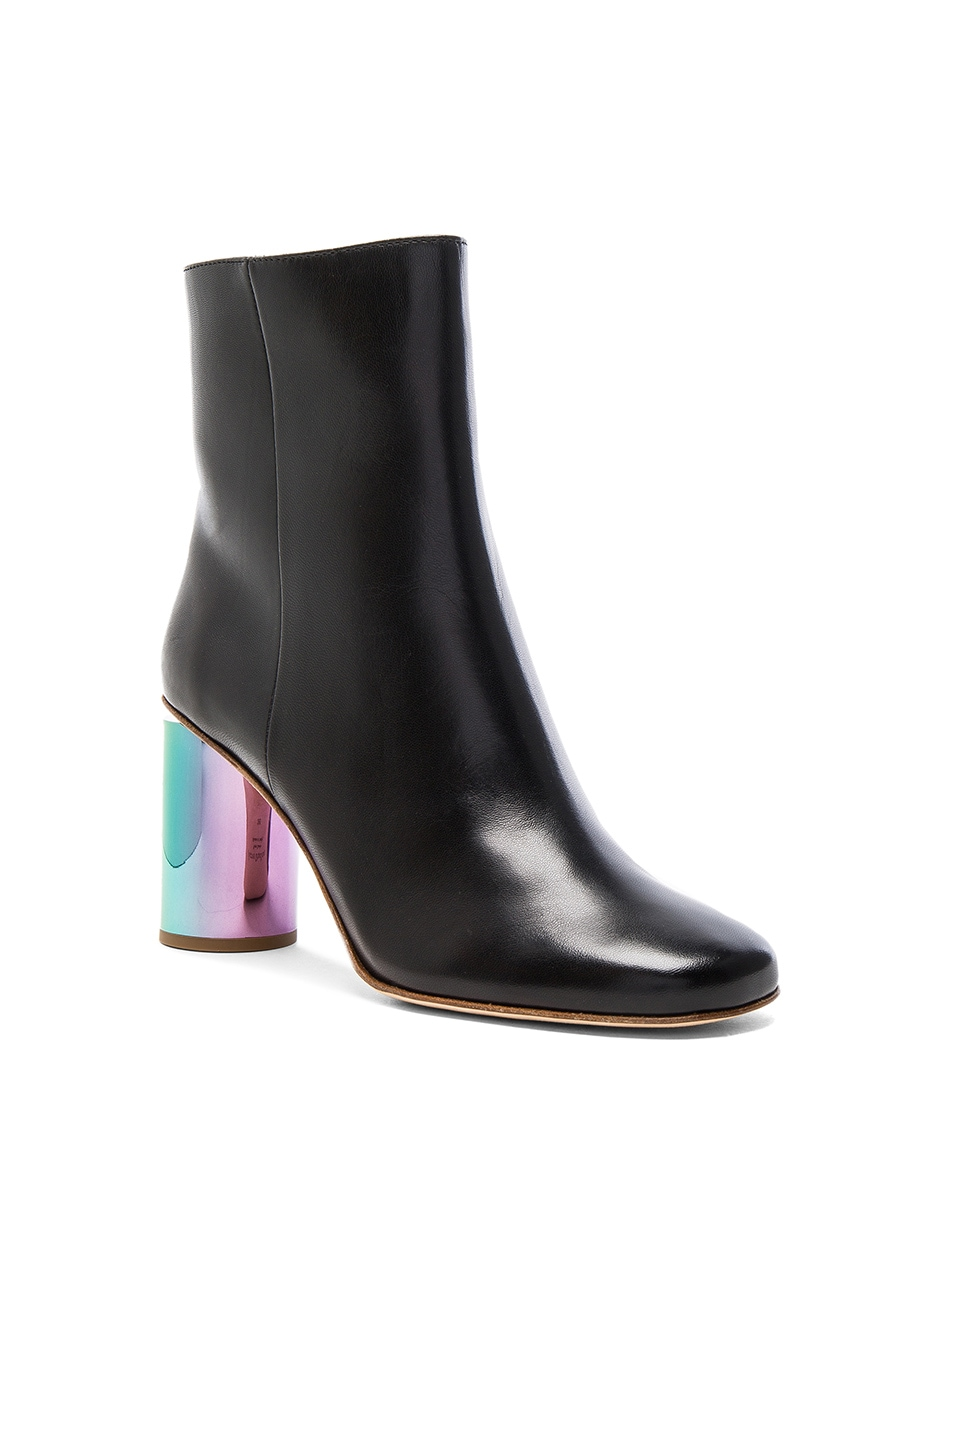 Image 2 of Acne Studios Leather Althea Booties in Black & Oily Yellow